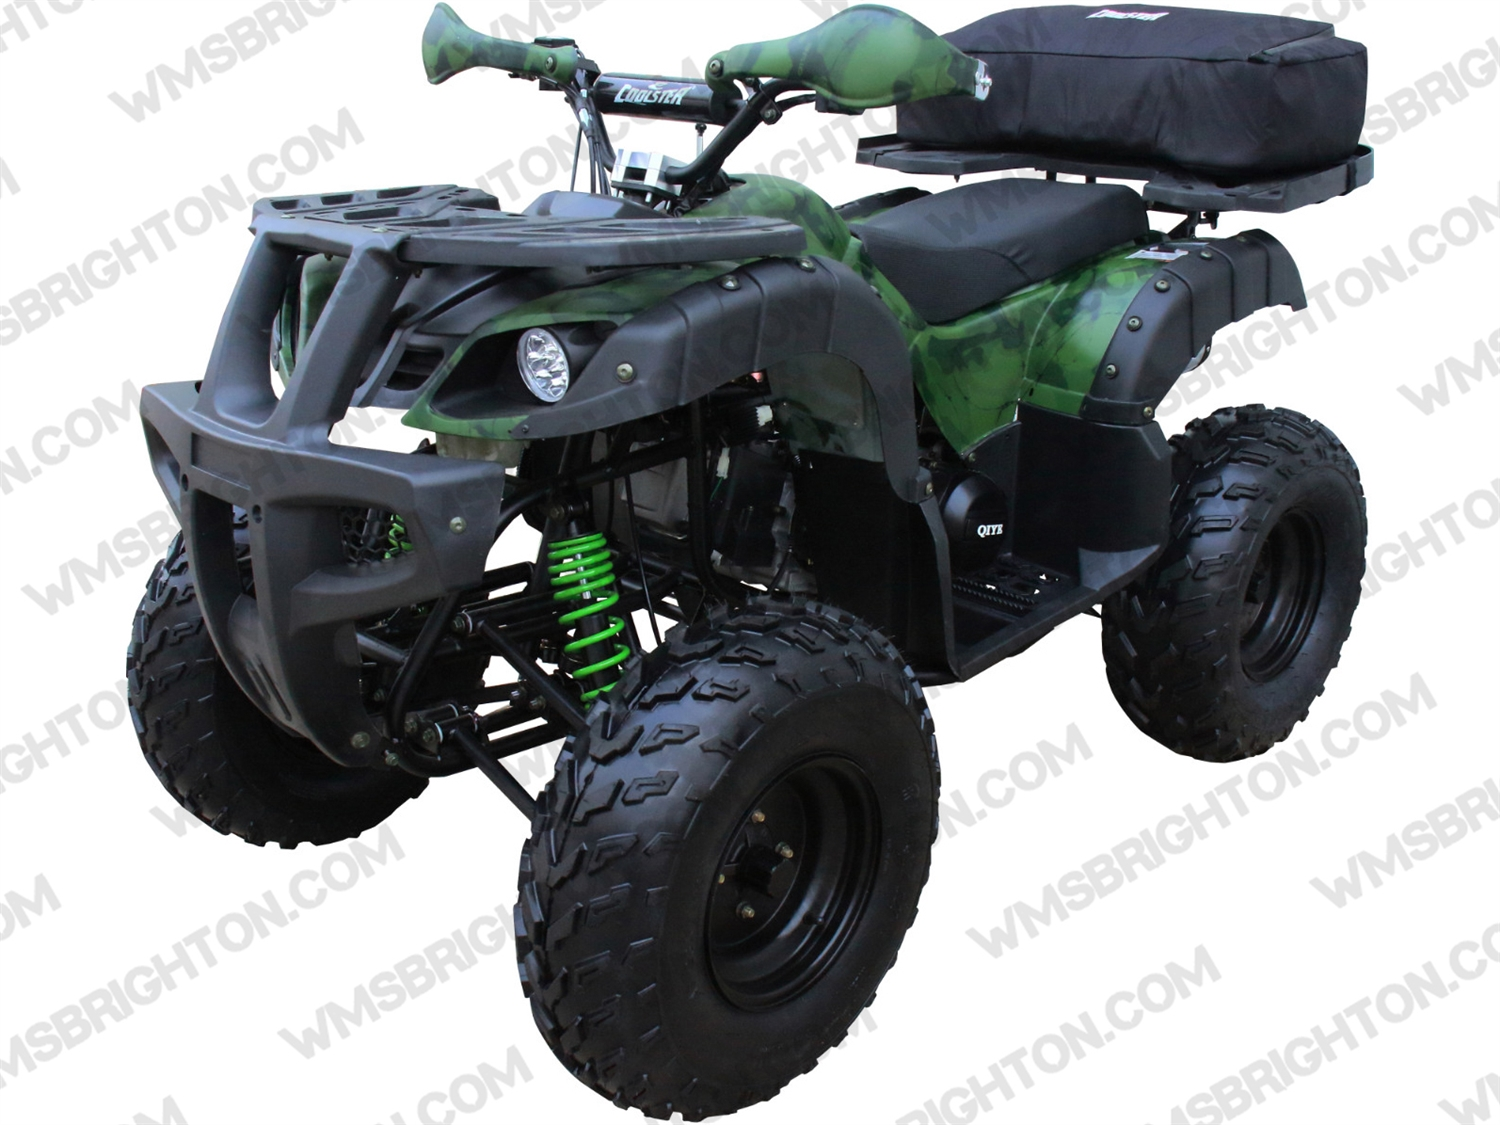 Coolster 150cc Atv Wiring Diagram Free For You 125cc 3150dx 4 Full Auto Rh Wmsbrighton Com Chinese